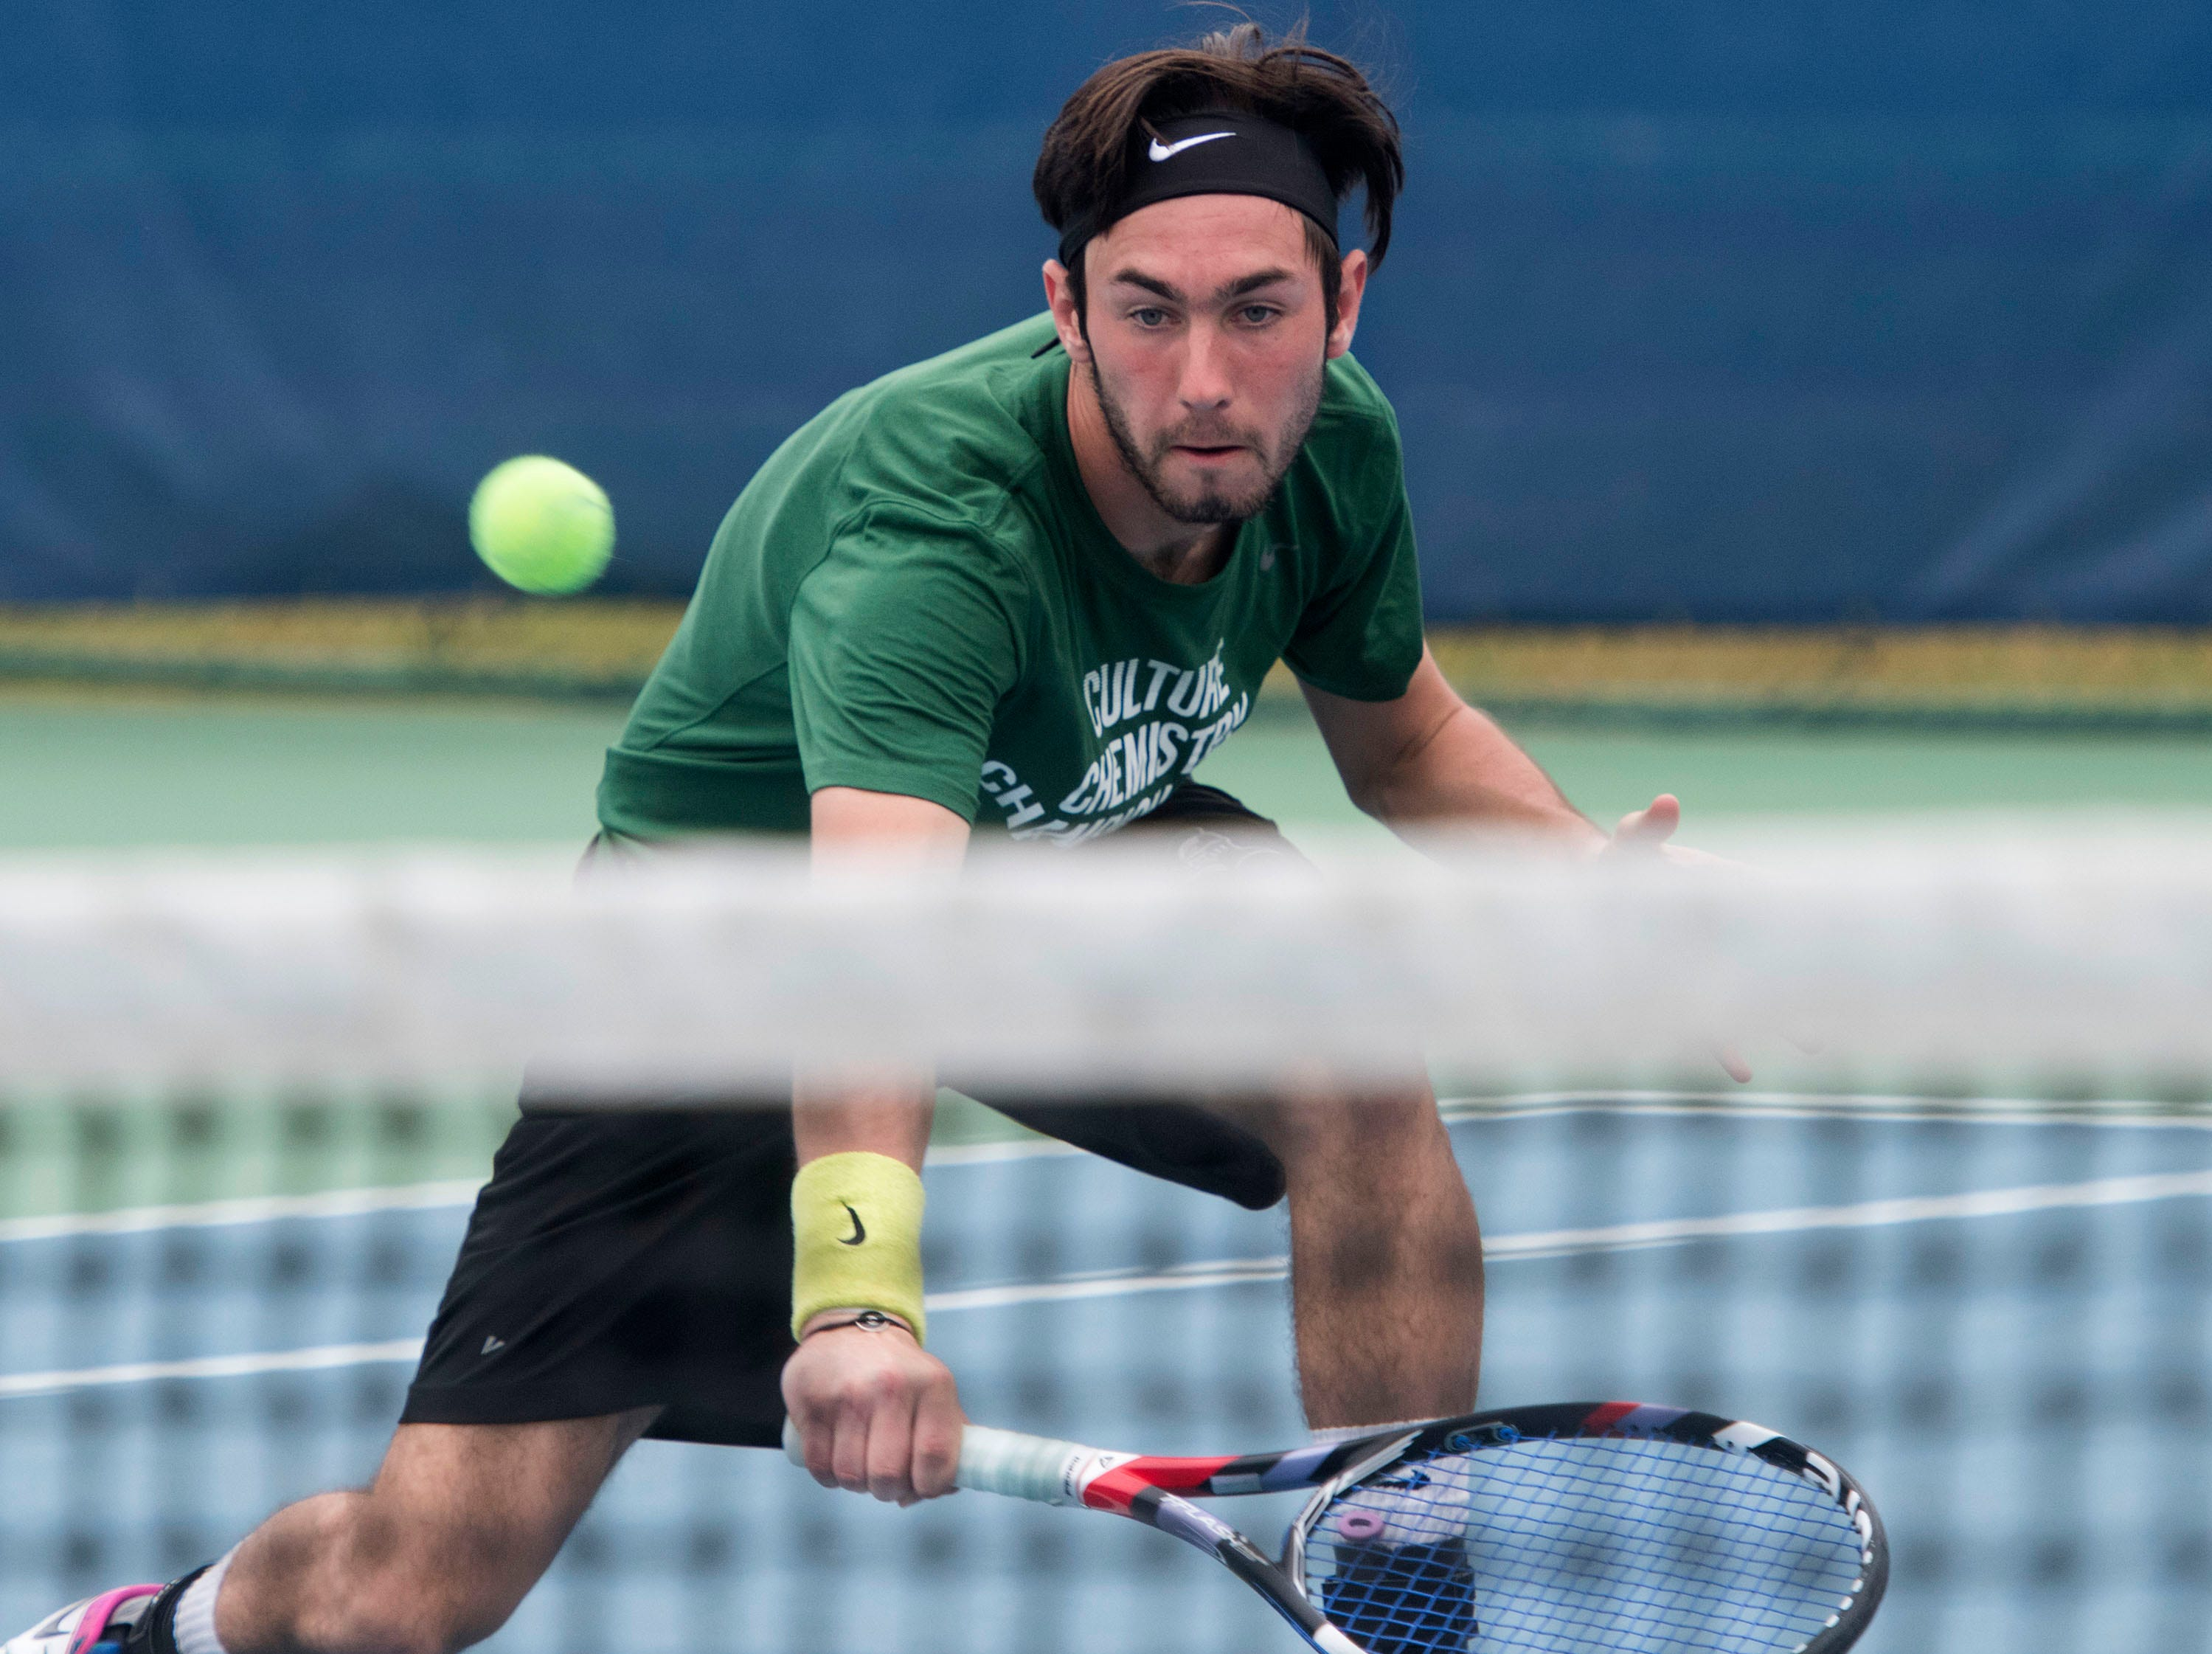 Hugo Lobo plays the net during doubles play against Abraham Baldwin Agricultural College during the Western Gate Tennis Invitational tournament at UWF on Monday, March 11, 2019. Seward won the match 8-6.